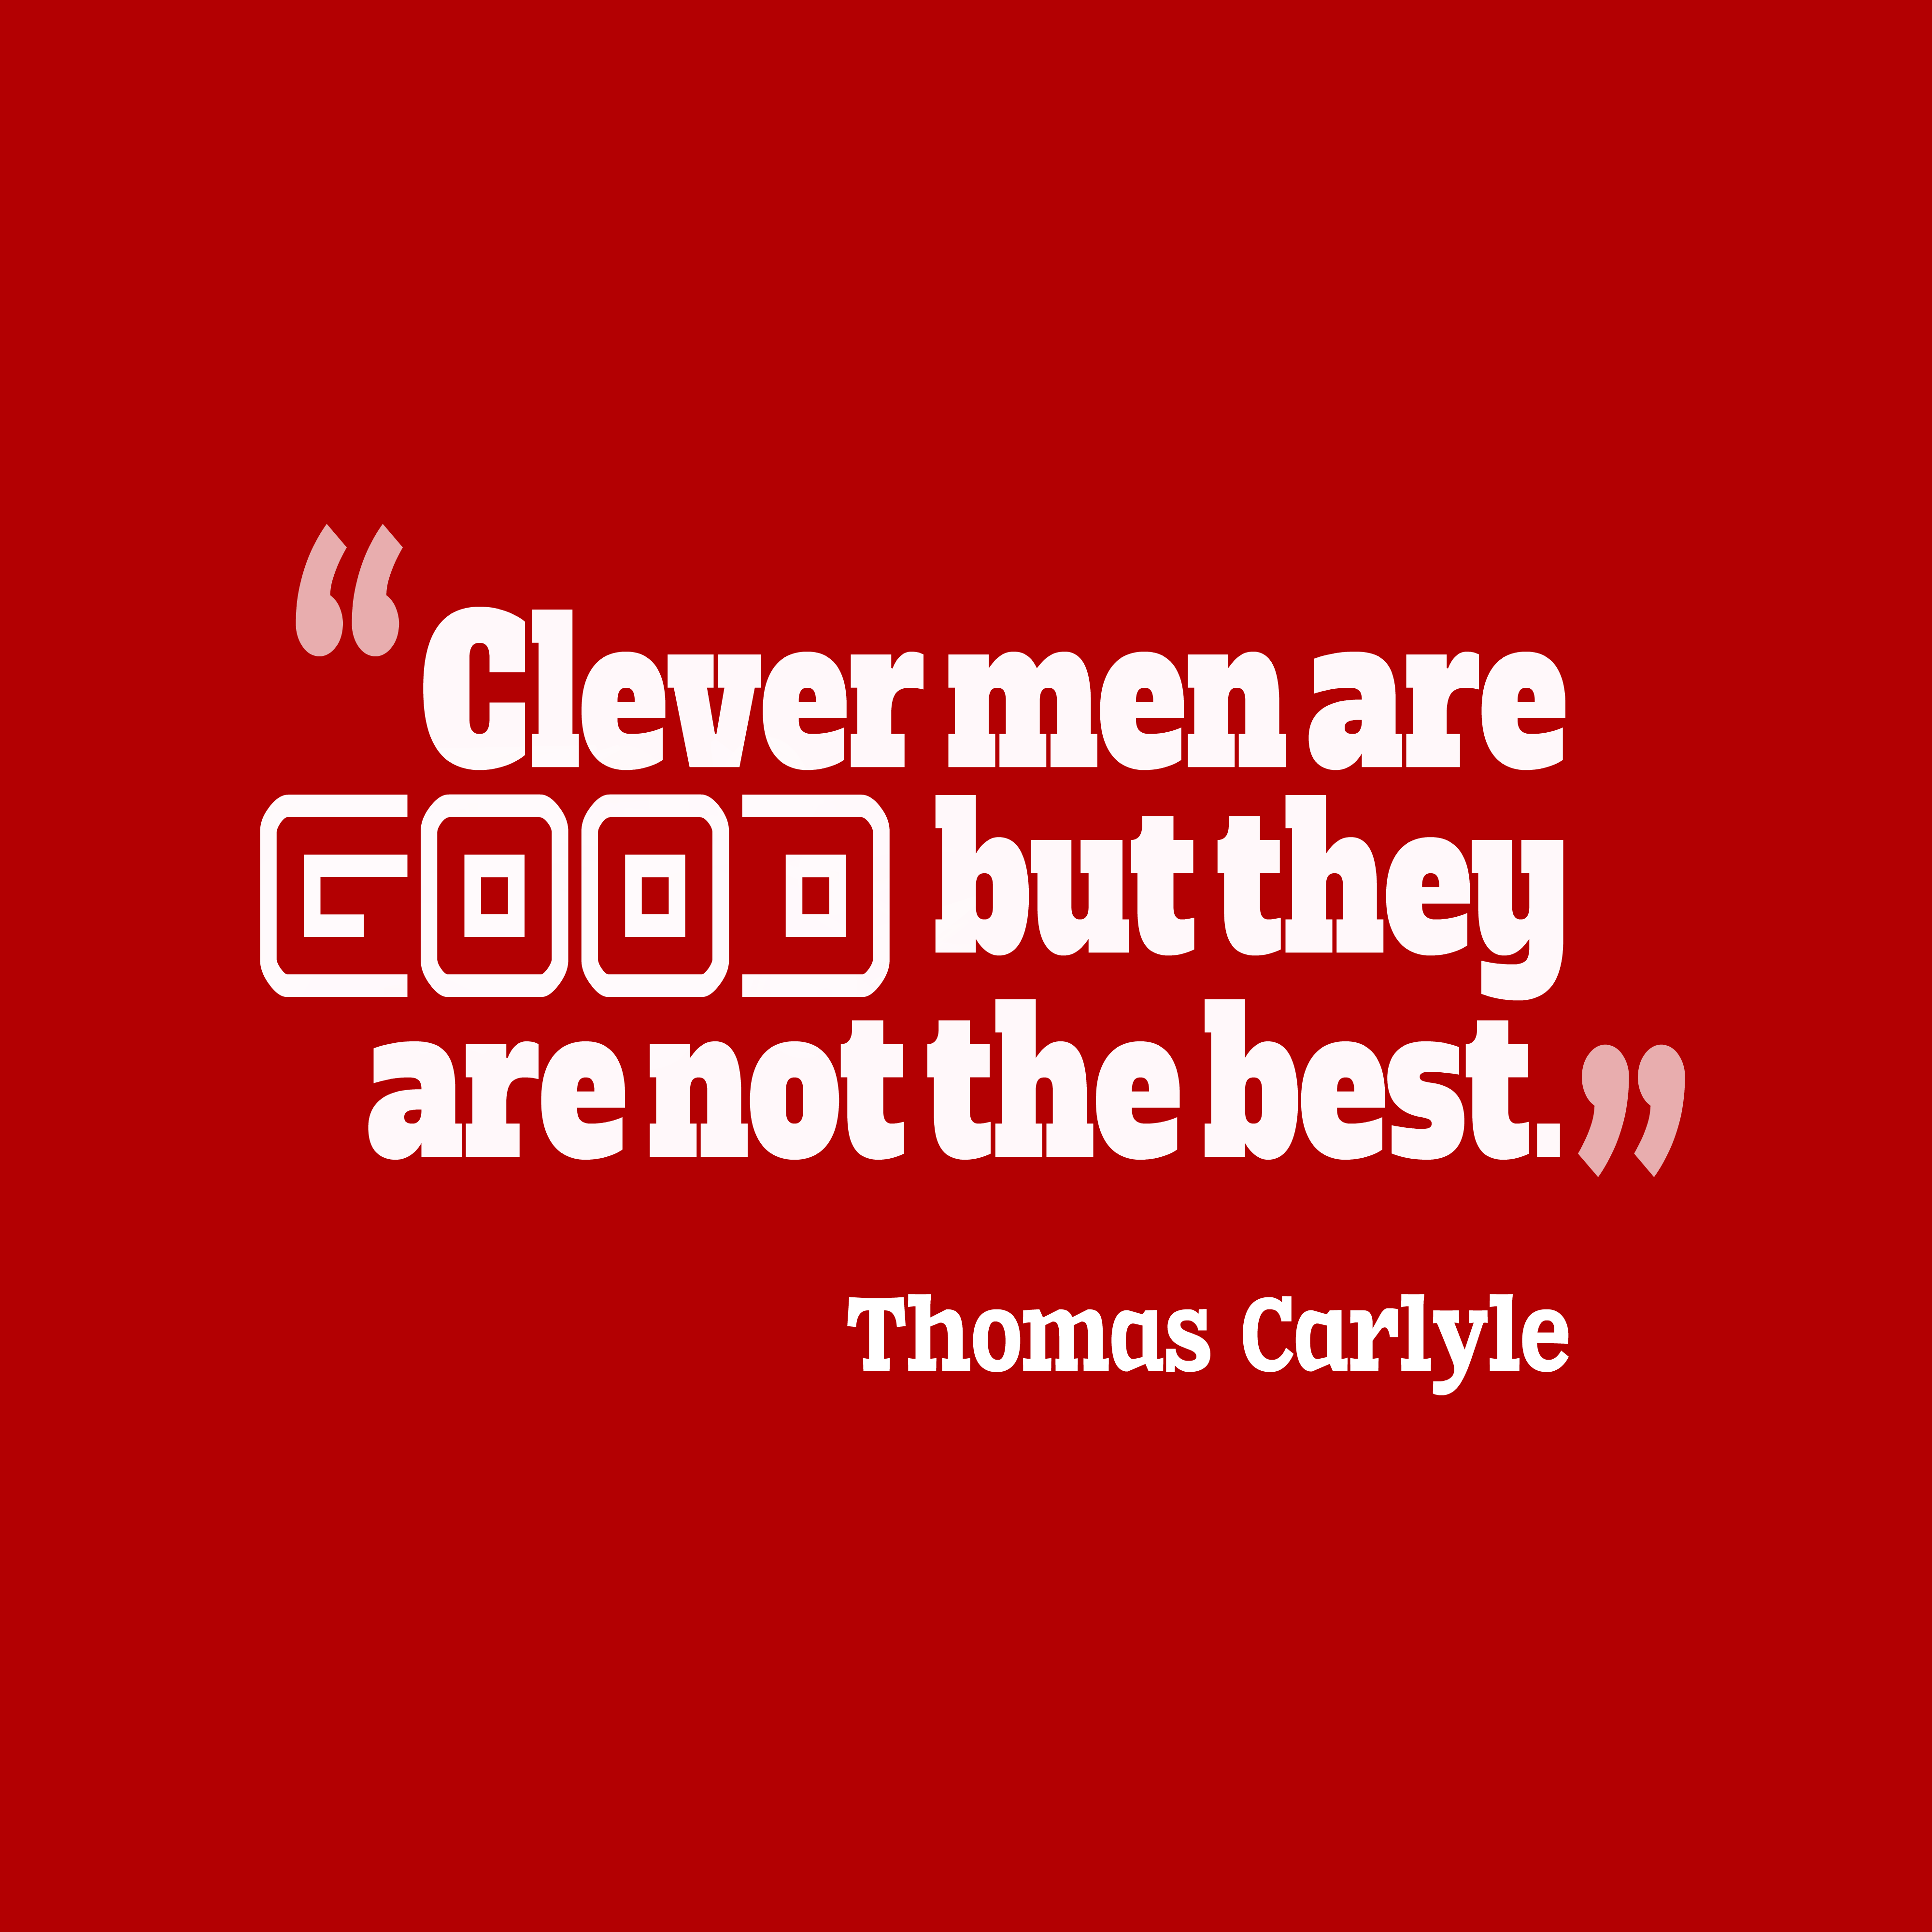 Quotes image of Clever men are good, but they are not the best.